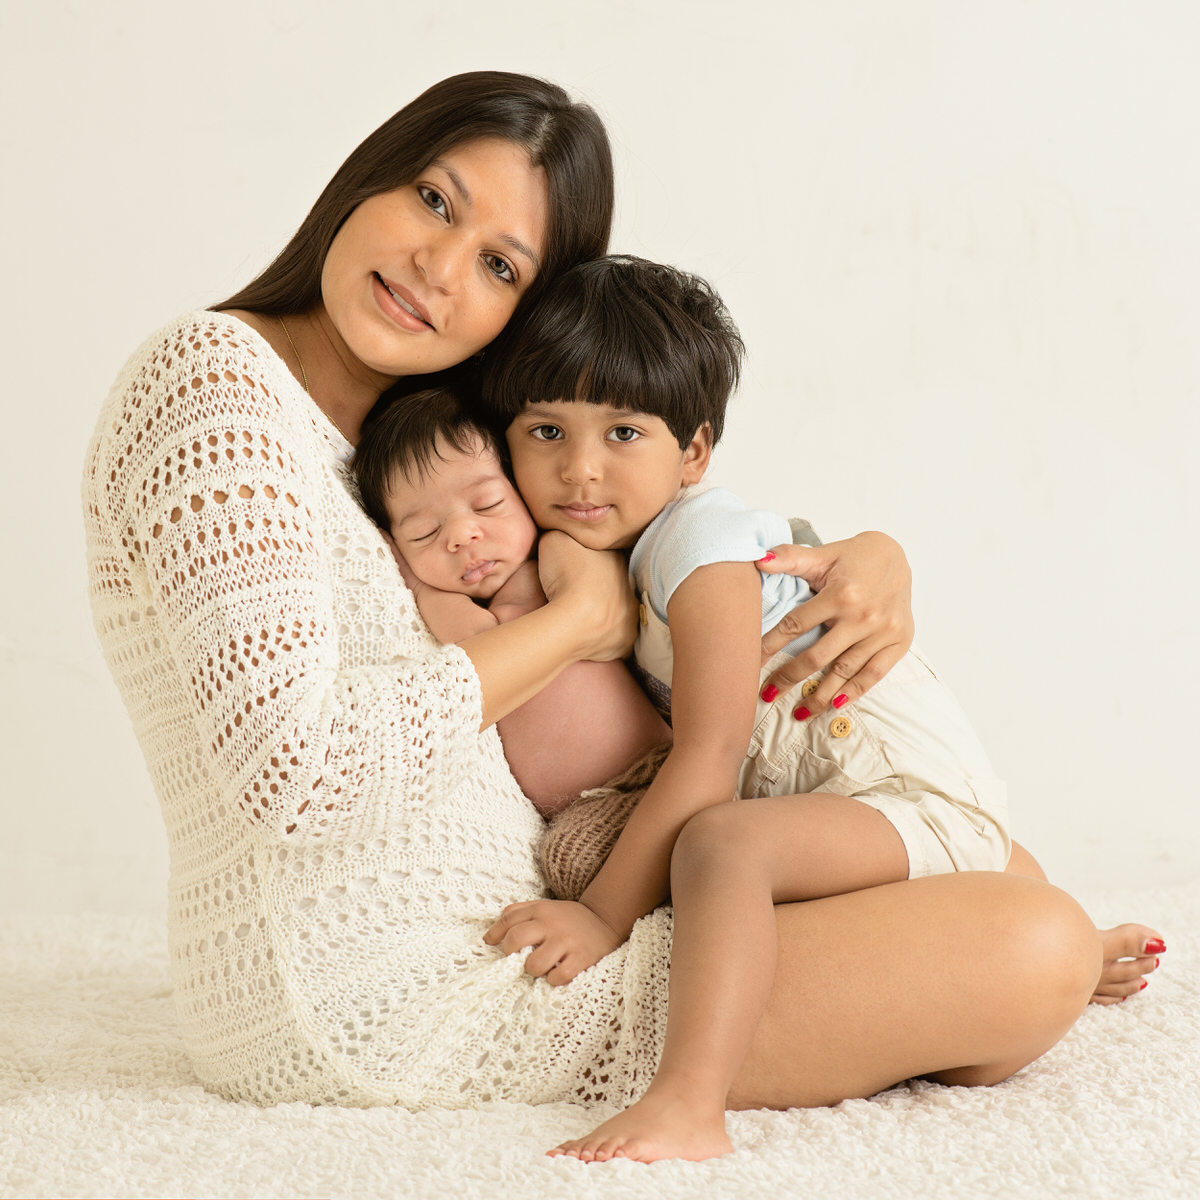 A mother wearing a crochet dress holding her newborn and toddler